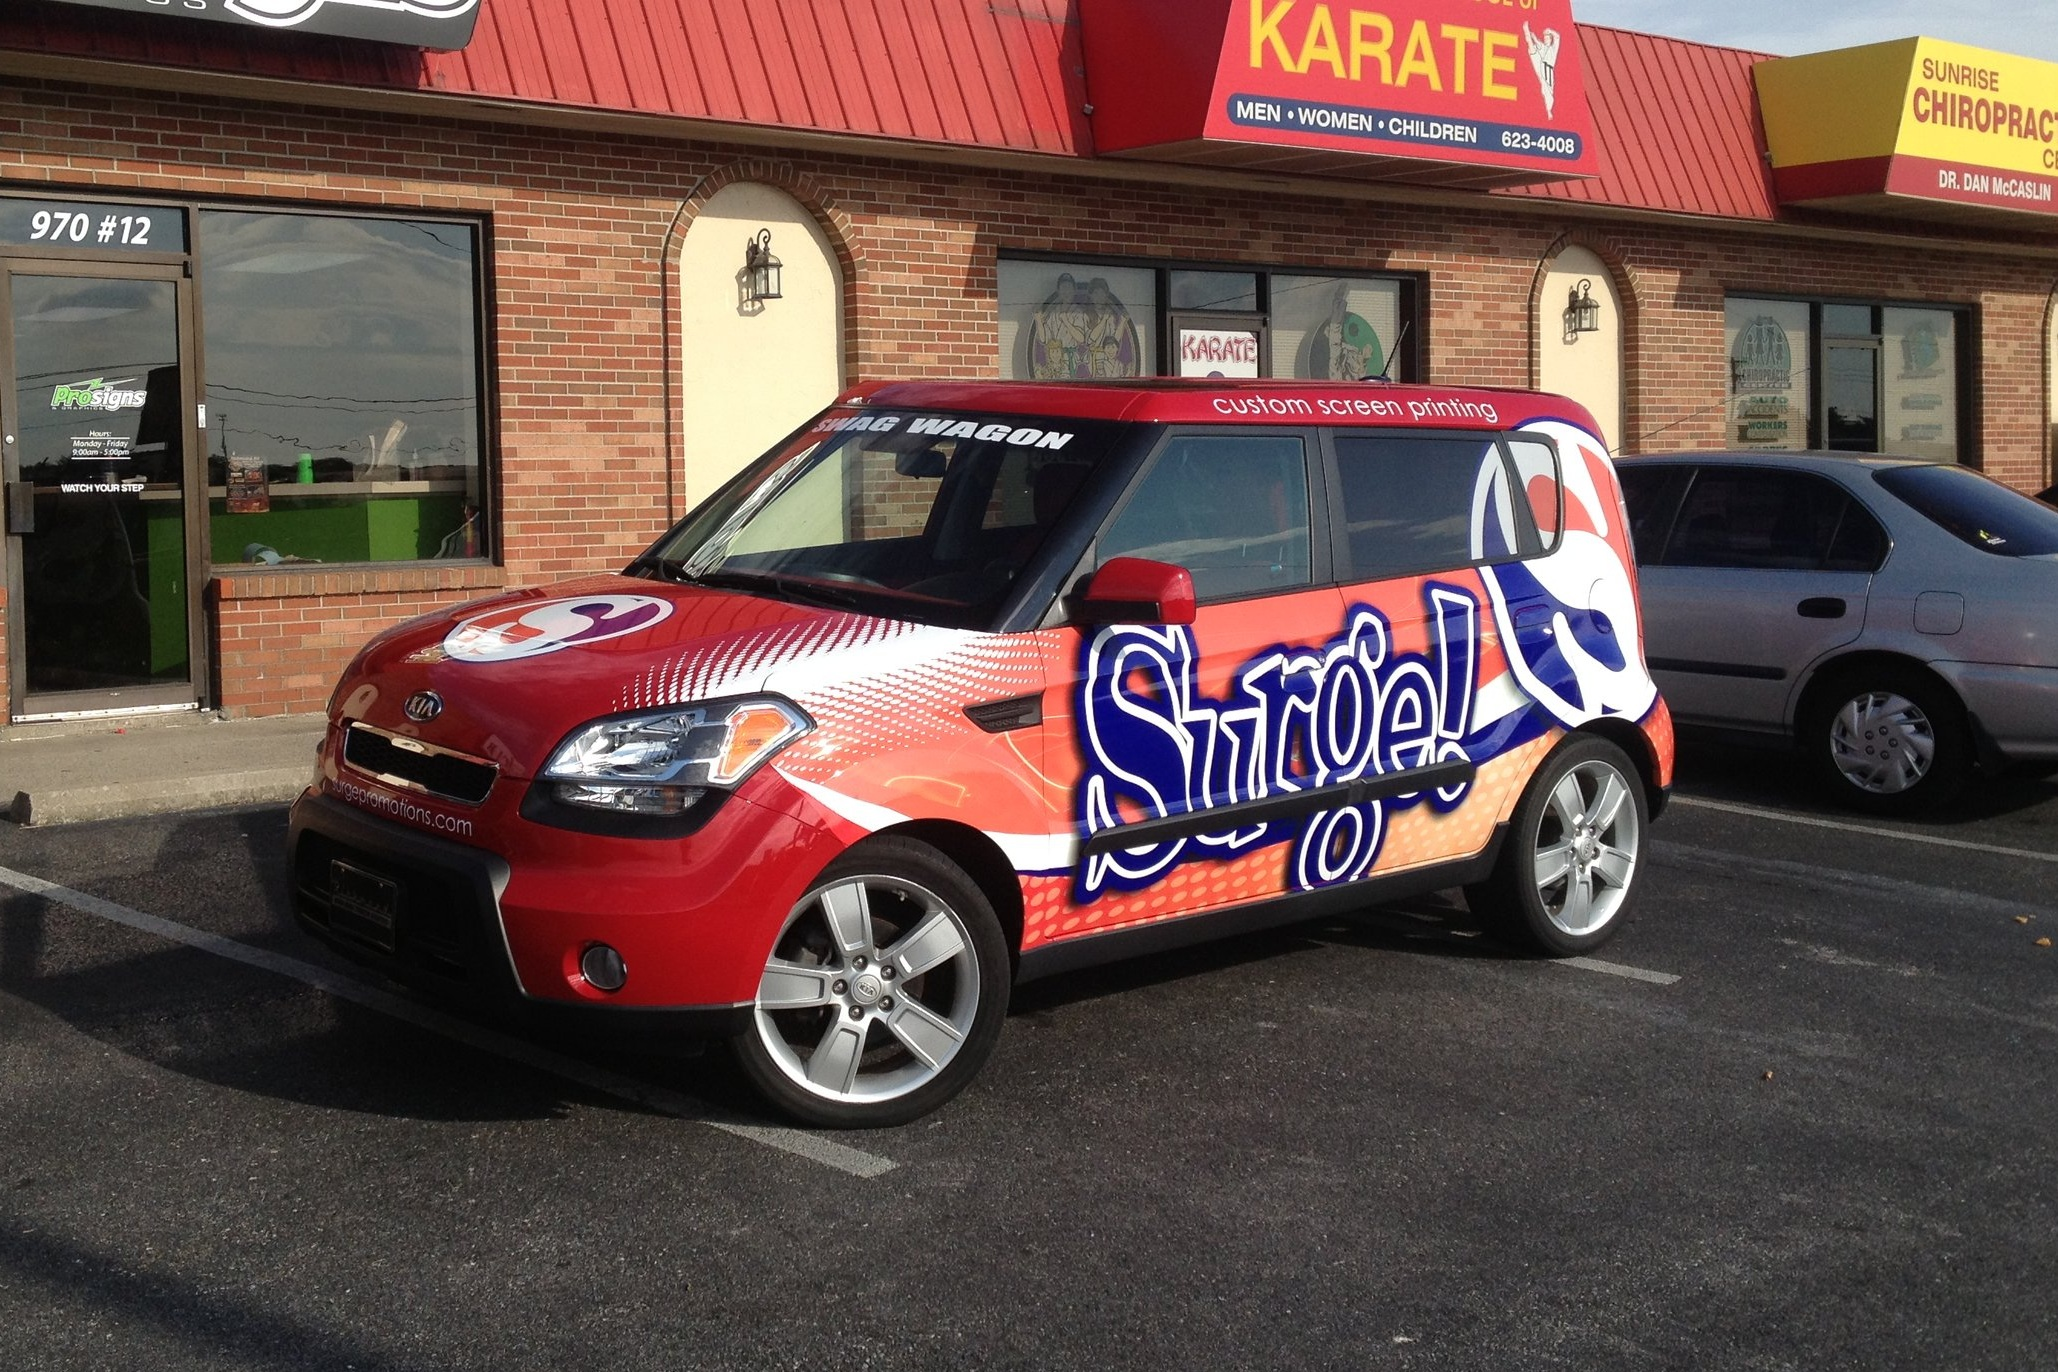 Vehicle Graphics - Take your branding on the road! Prosigns uses the finest materials available and has highly-skilled installers that create and install the perfect look for your ride. Anything from large fleet graphics to your custom hot rod, racing stripes to full vehicle wraps, Prosigns can help your ideas take shape.